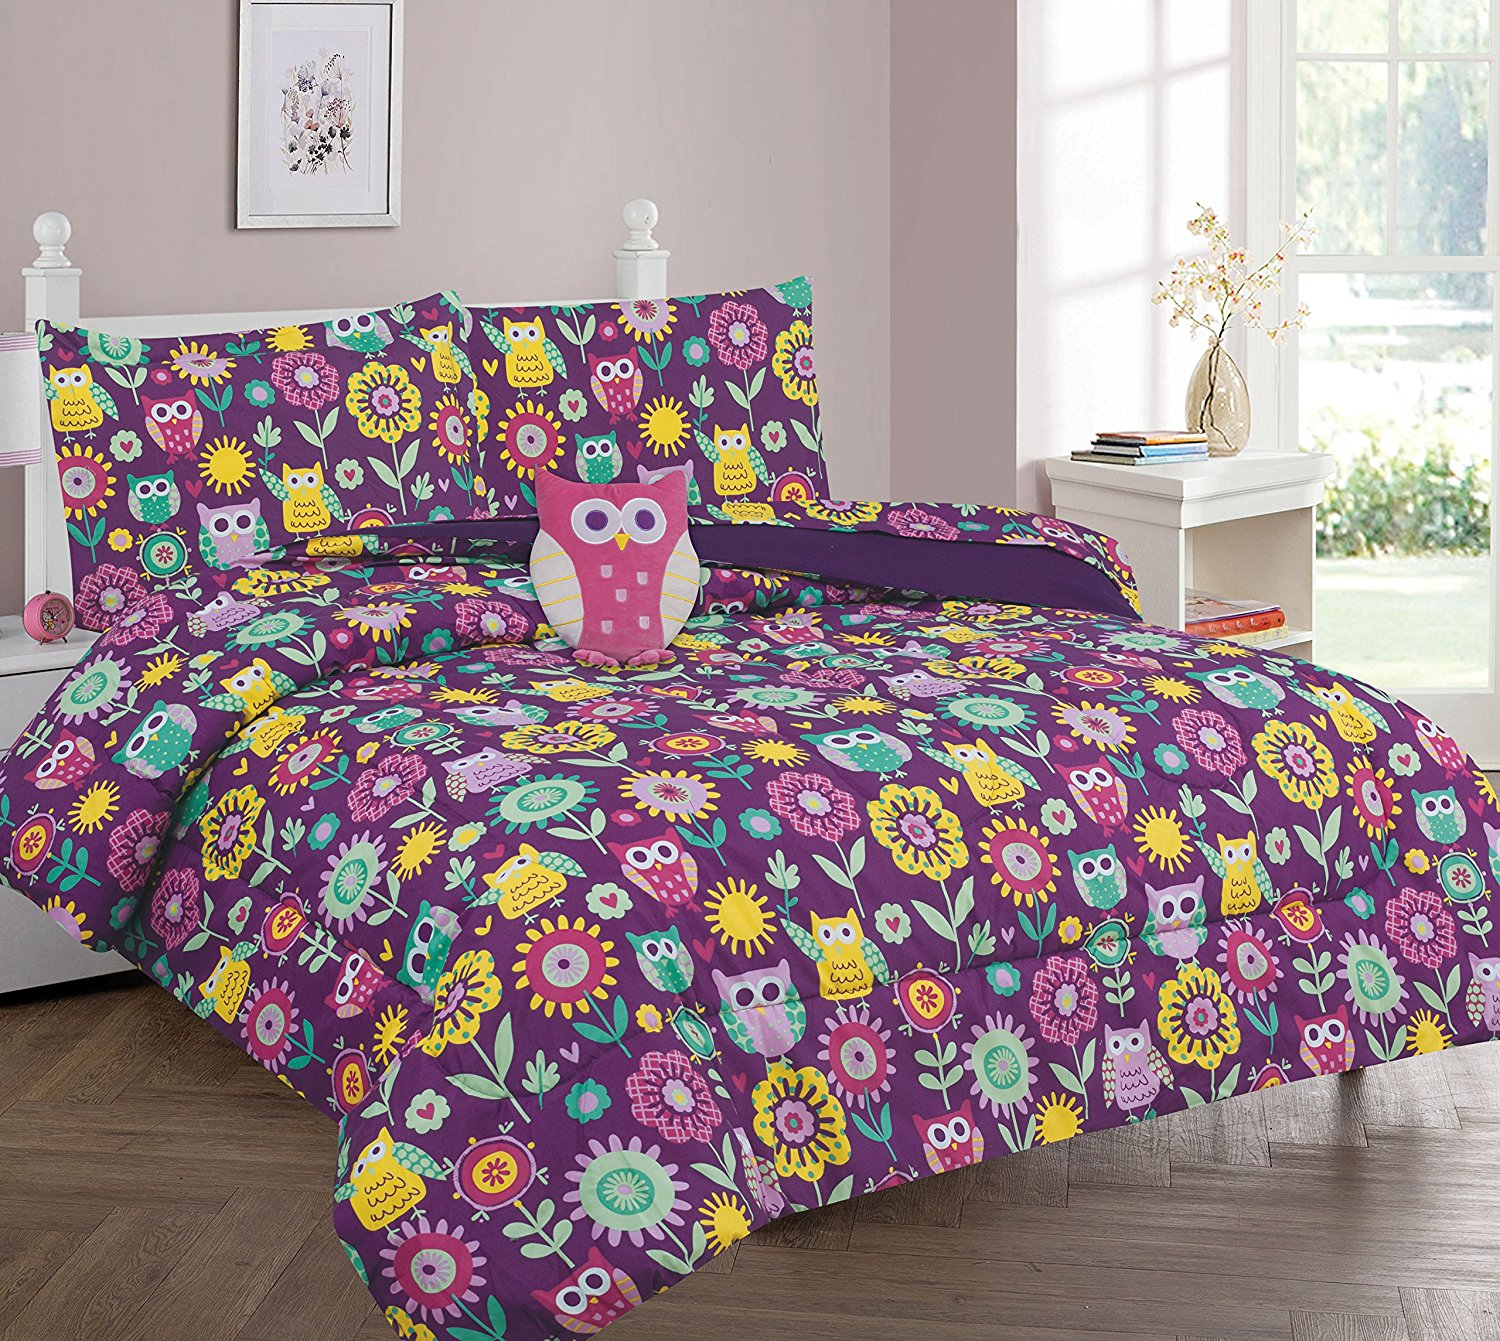 Cheap Purple Comforter Sets Twin Find Purple Comforter Sets Twin